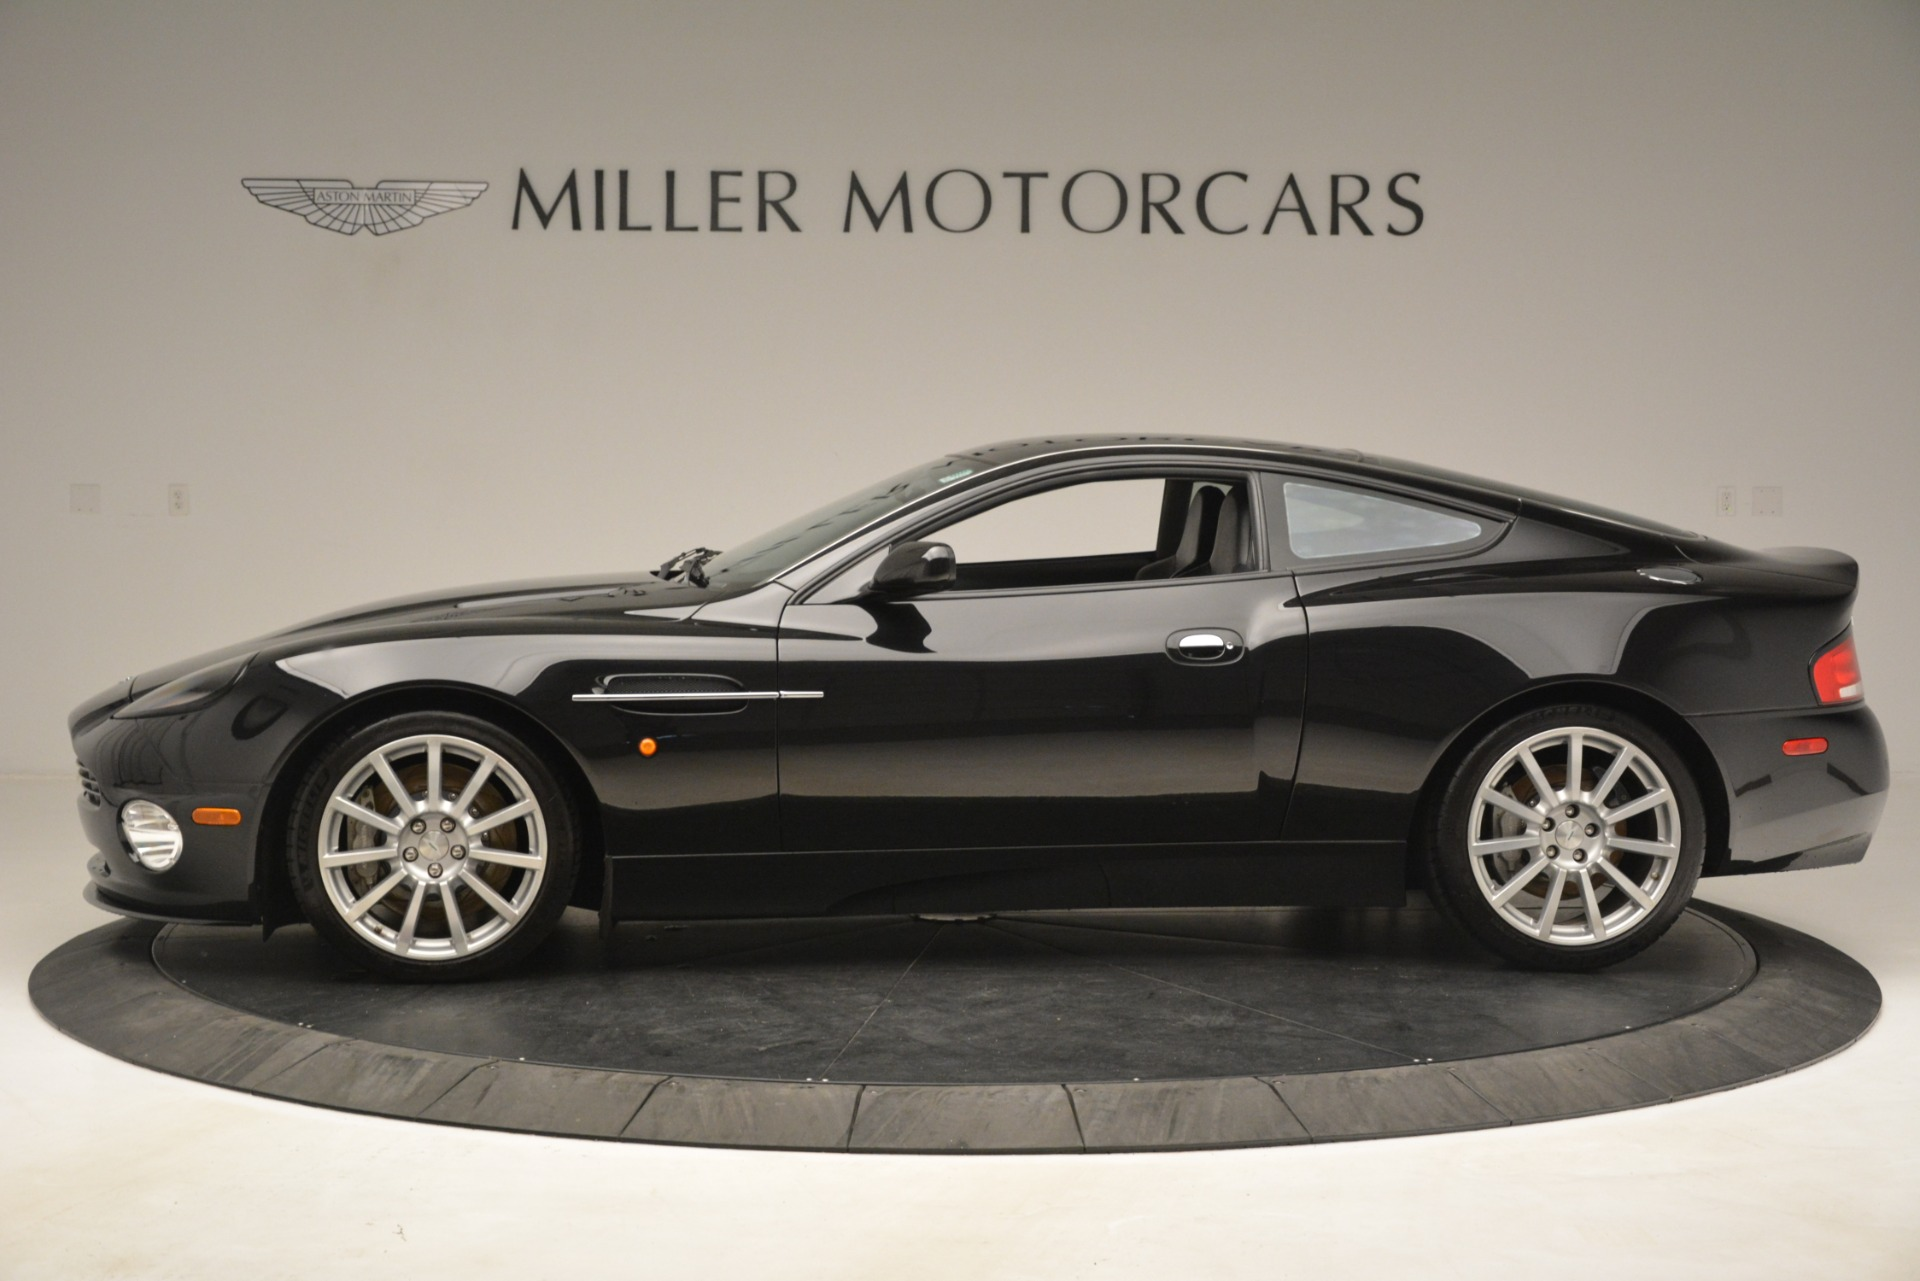 Used 2005 Aston Martin V12 Vanquish S For Sale In Greenwich, CT 3218_p3